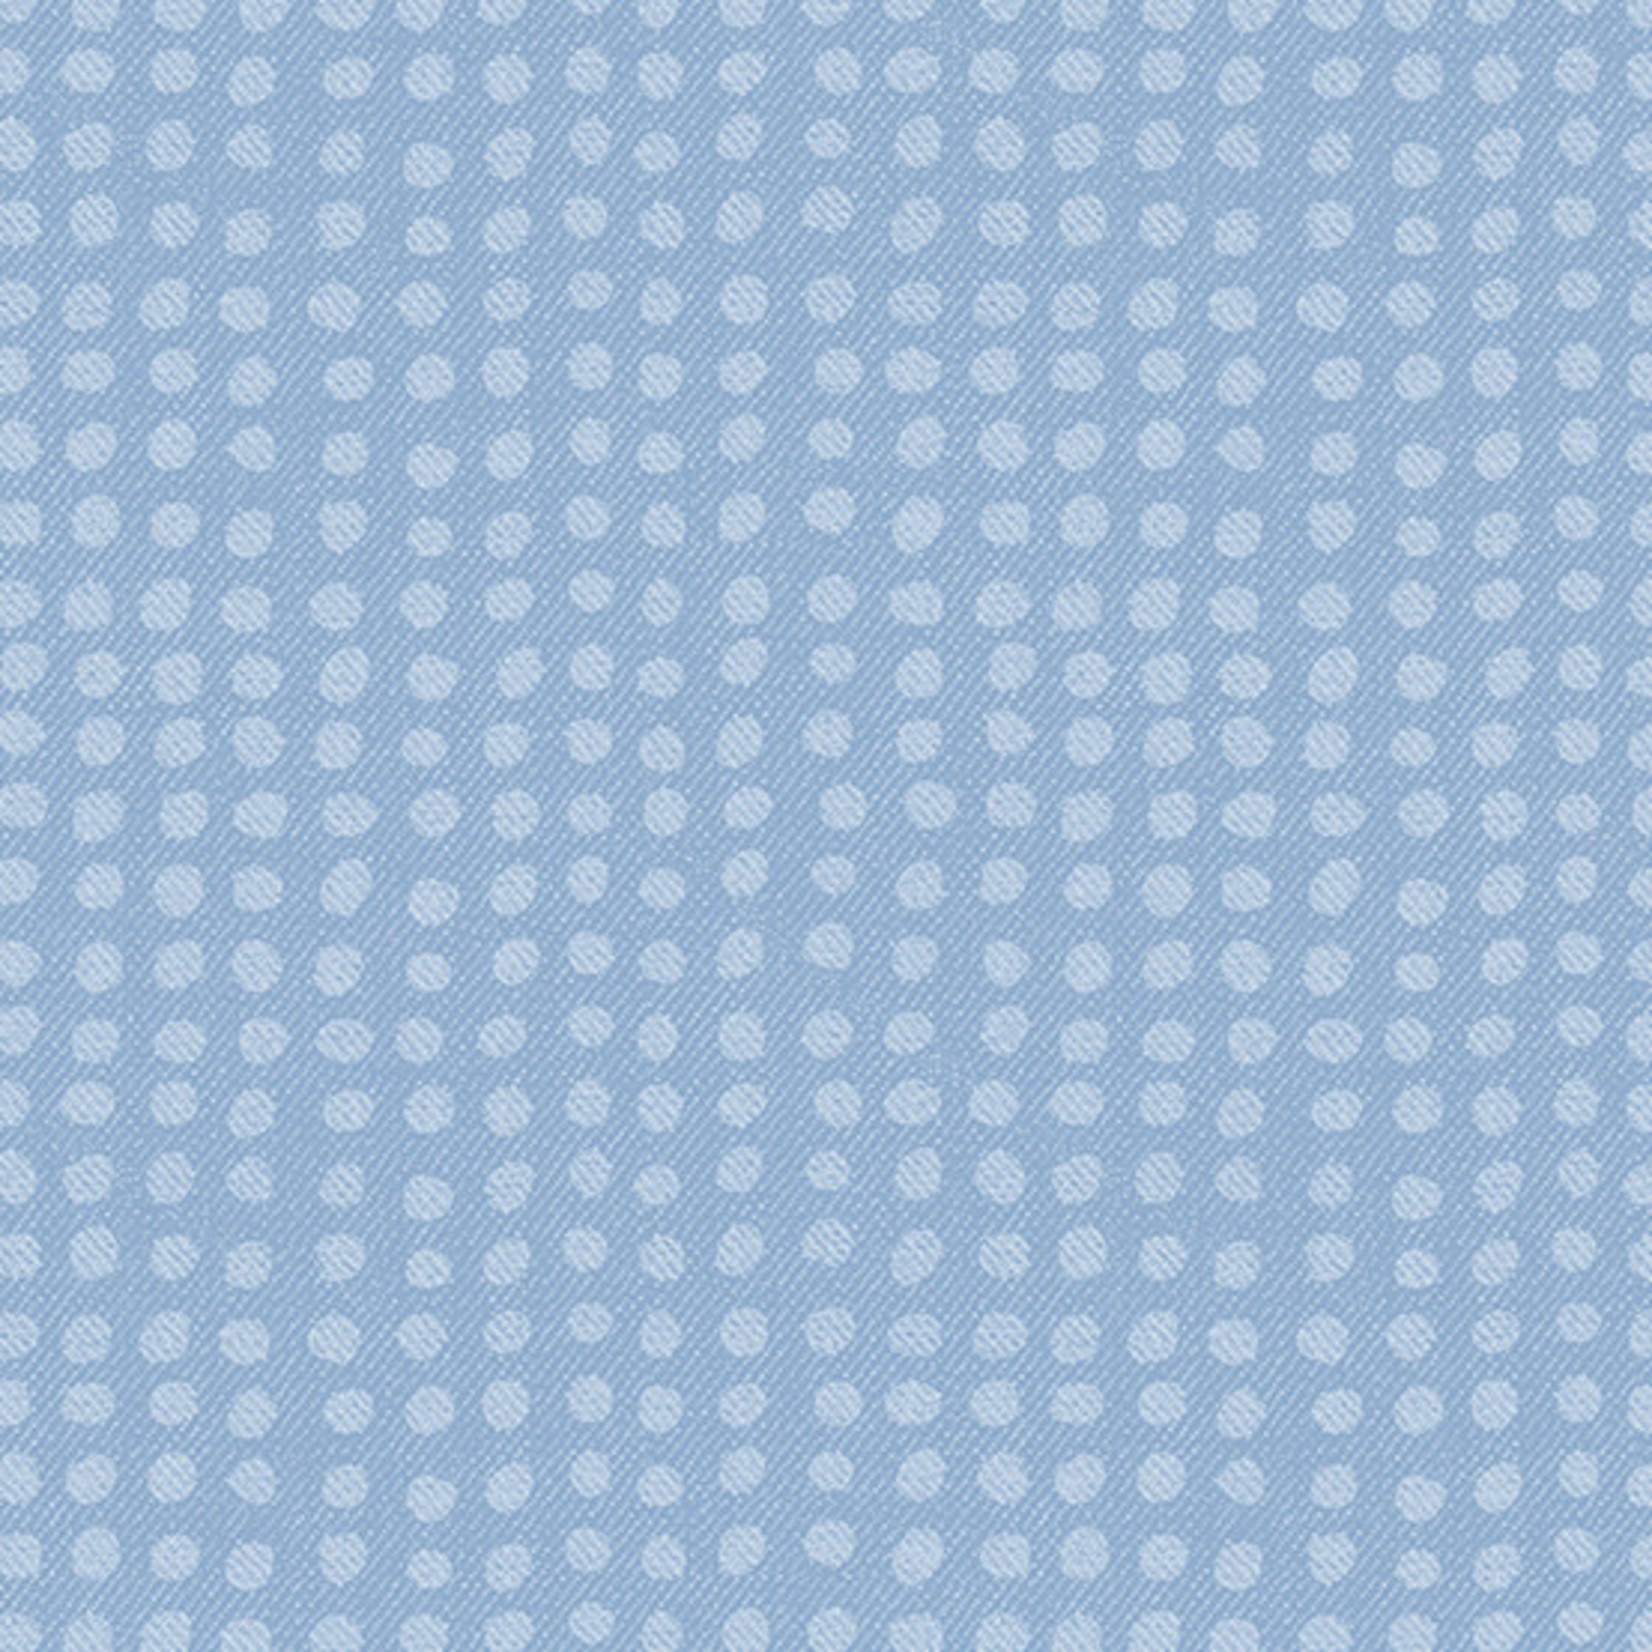 Andover Almost Blue, Dot, Sunbleached, $0.20/cm or $20/m